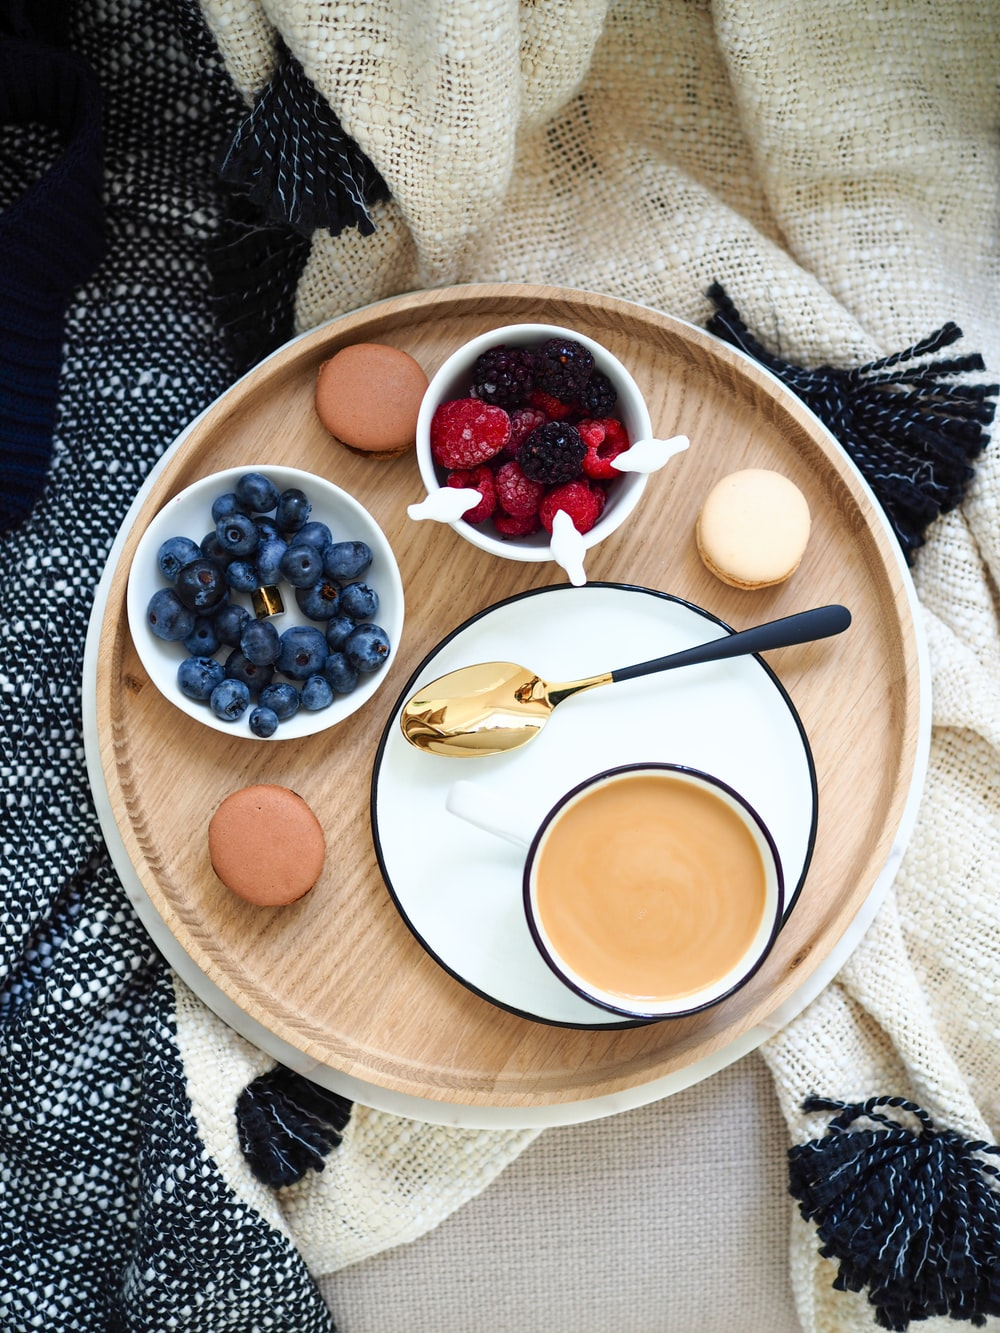 flat lay photography of cup of coffee beside raspberries and blueberries on bowls